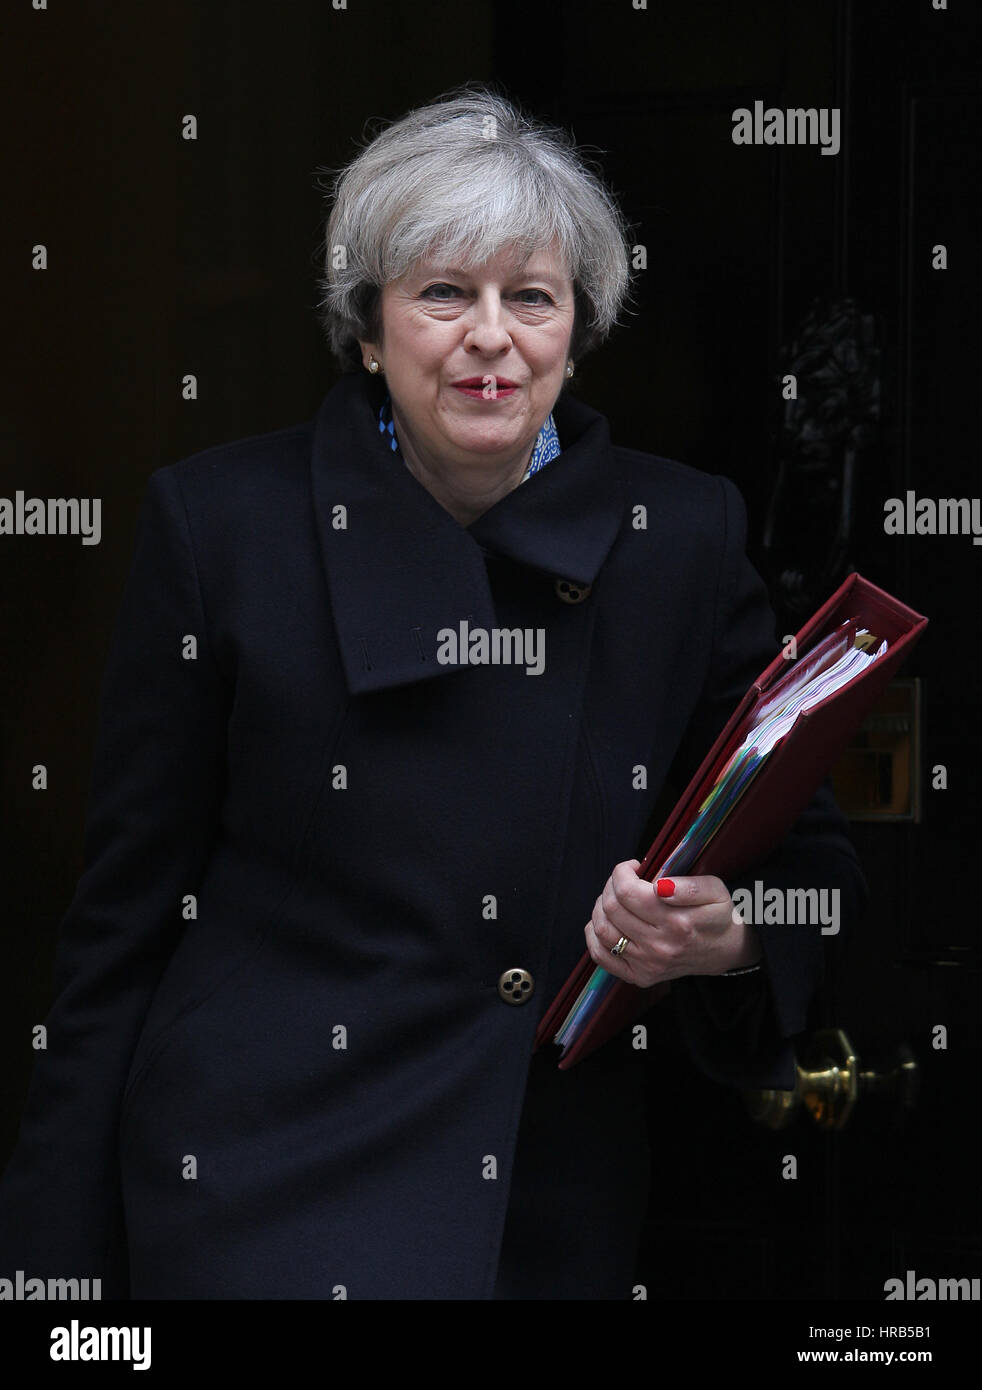 London, UK. 1st Mar, 2017. Prime Minister Theresa May seen leaving 10 Downing street for PMQs at the House of Commons. Stock Photo